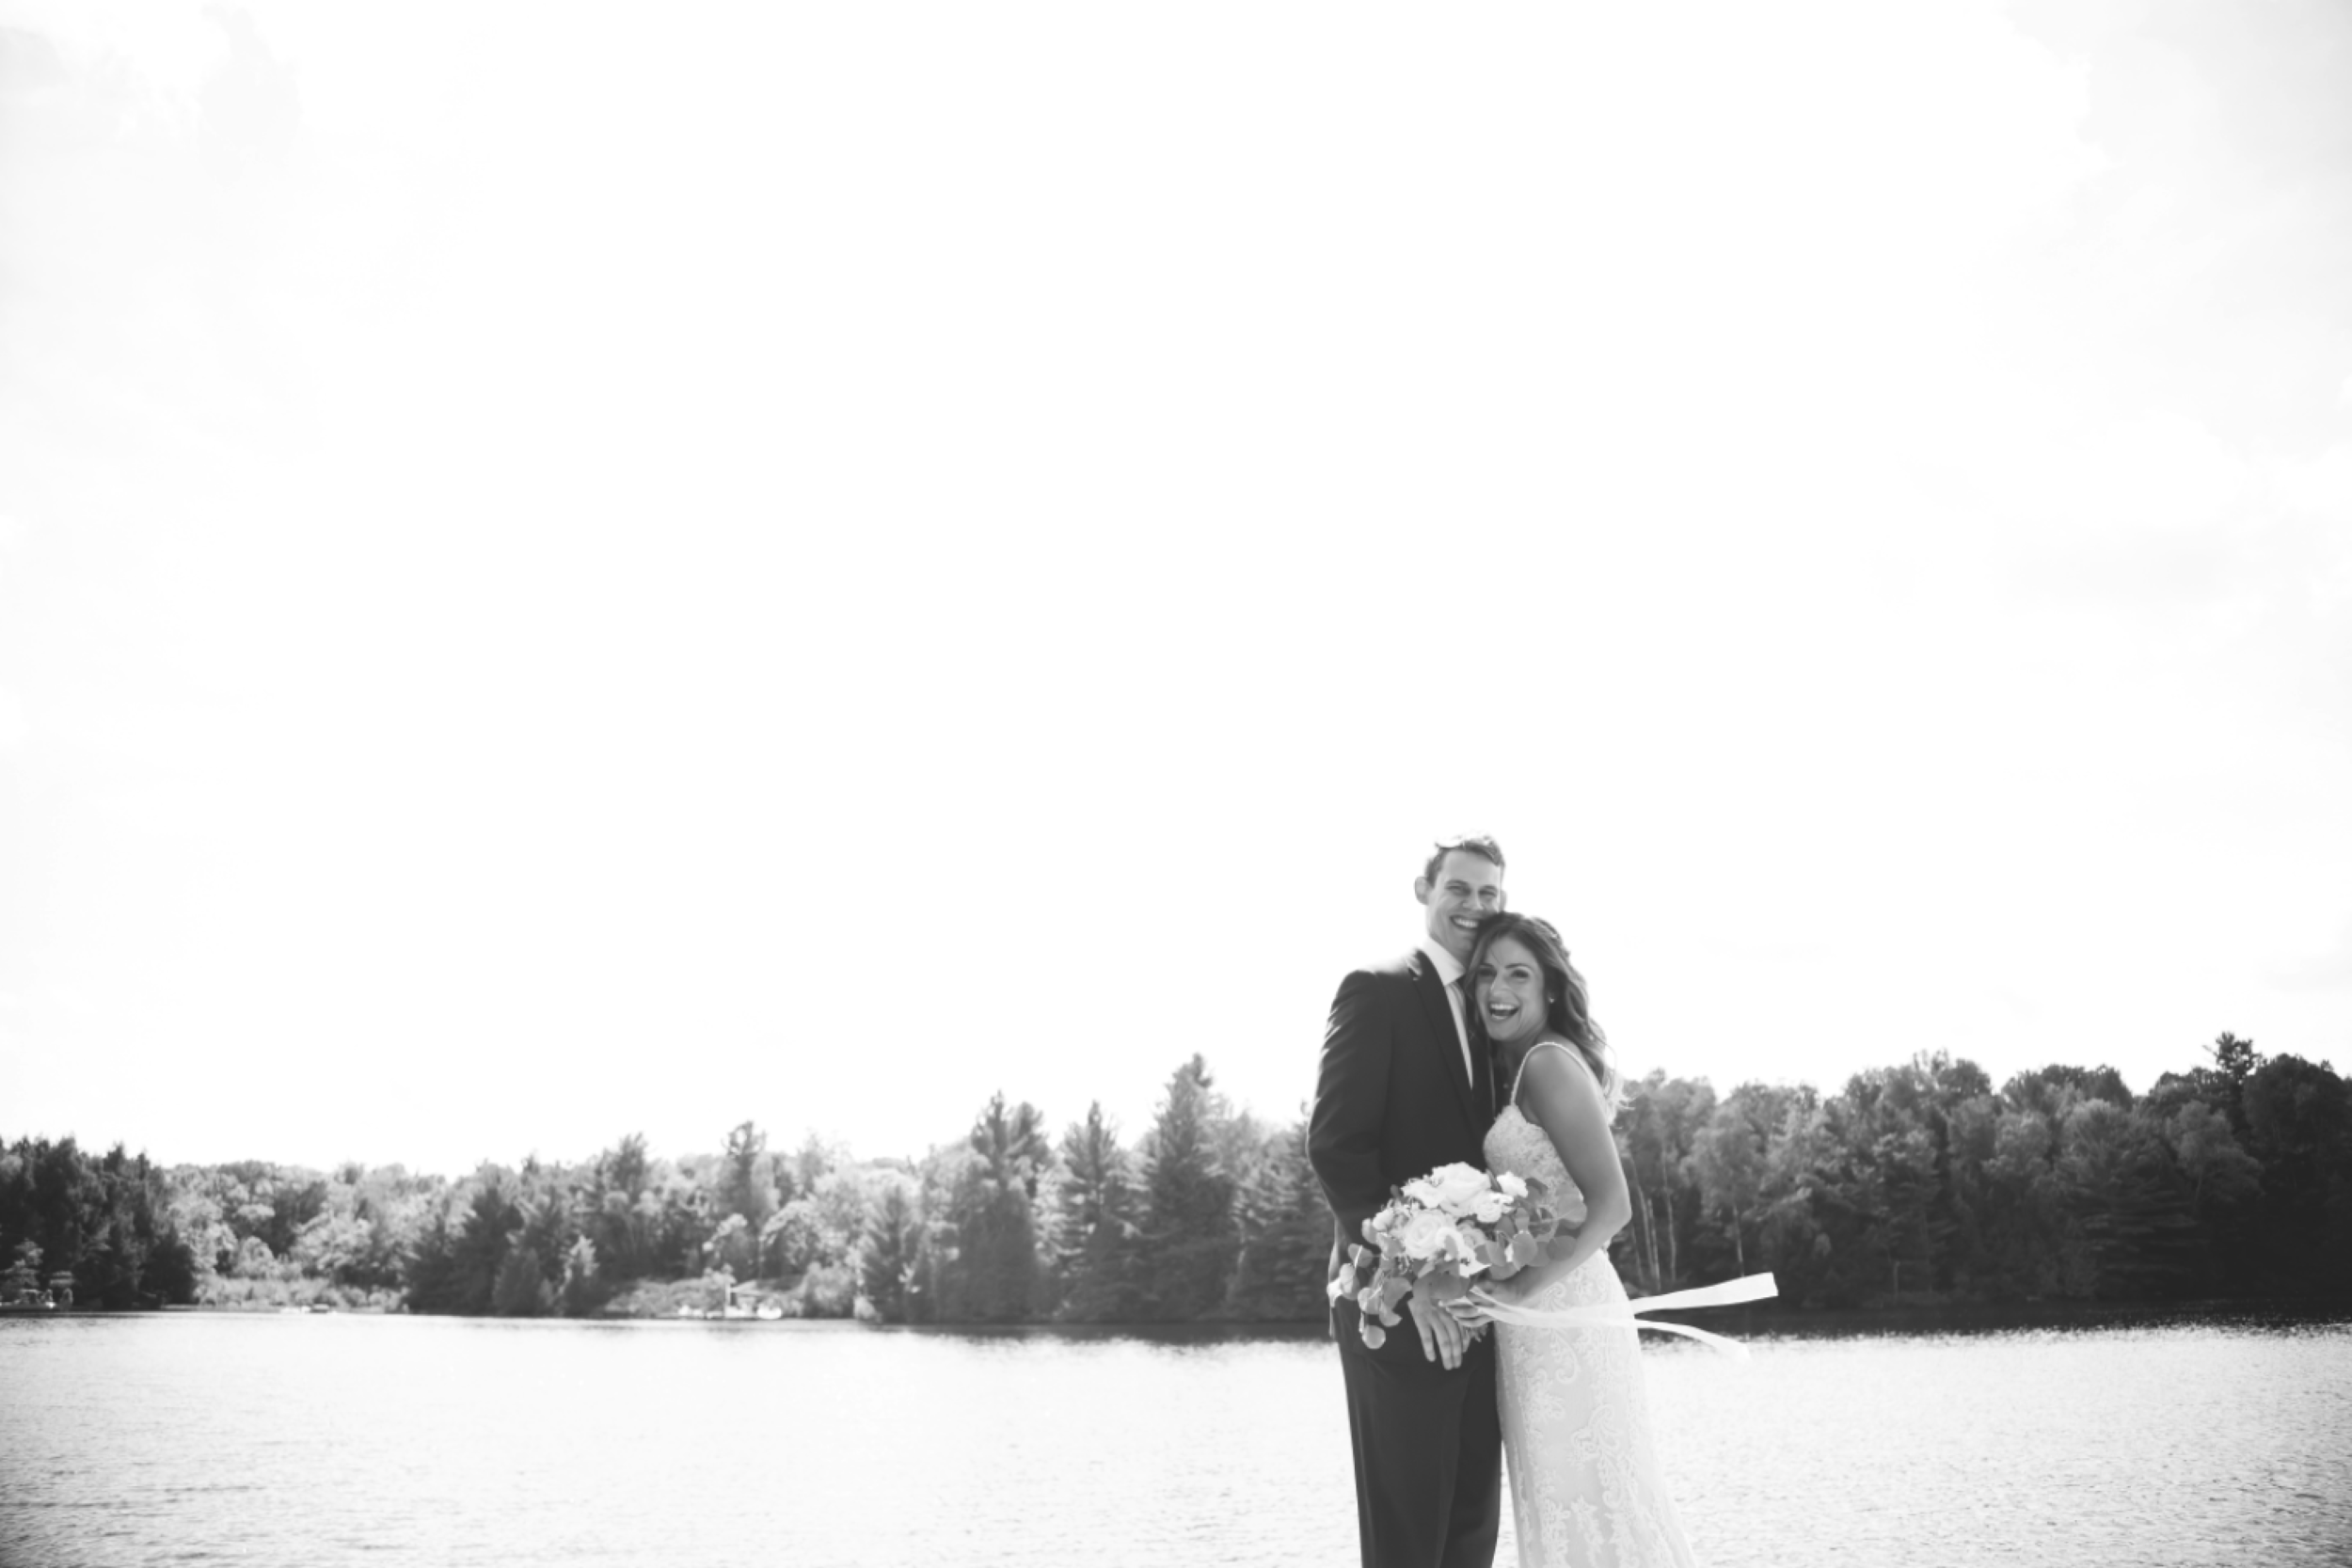 Wedding-Photos-Muskoka-Clevelands-House-Photographer-Wedding-Hamilton-GTA-Niagara-Oakville-Moments-by-Lauren-Photography-Photo-Image-40.png